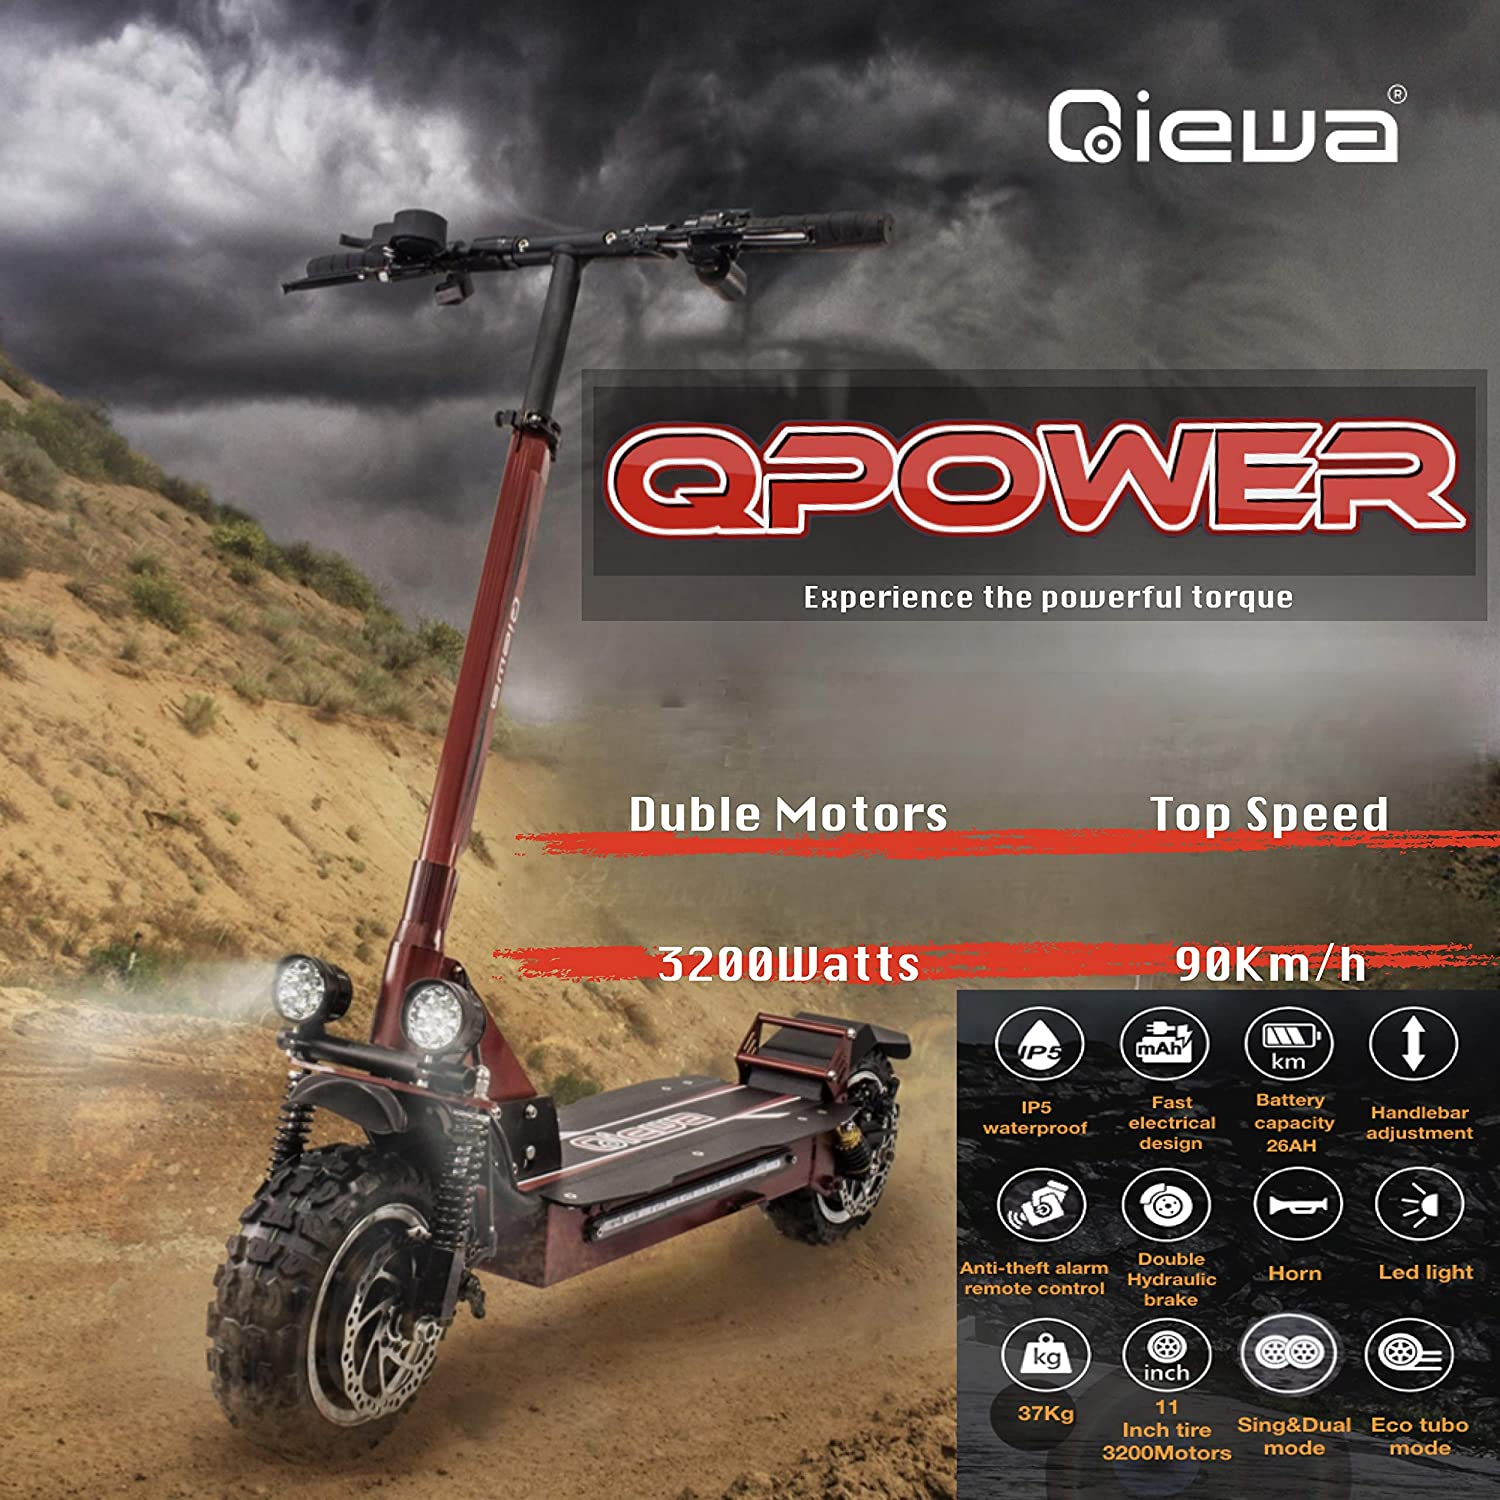 QIEWA QPOWER Duble Motors Off Road Scooter 3200Watts Duble Motor with 11-inch Off-Road Tires Max Speed up to 100Km/h Super Power Crazy Design